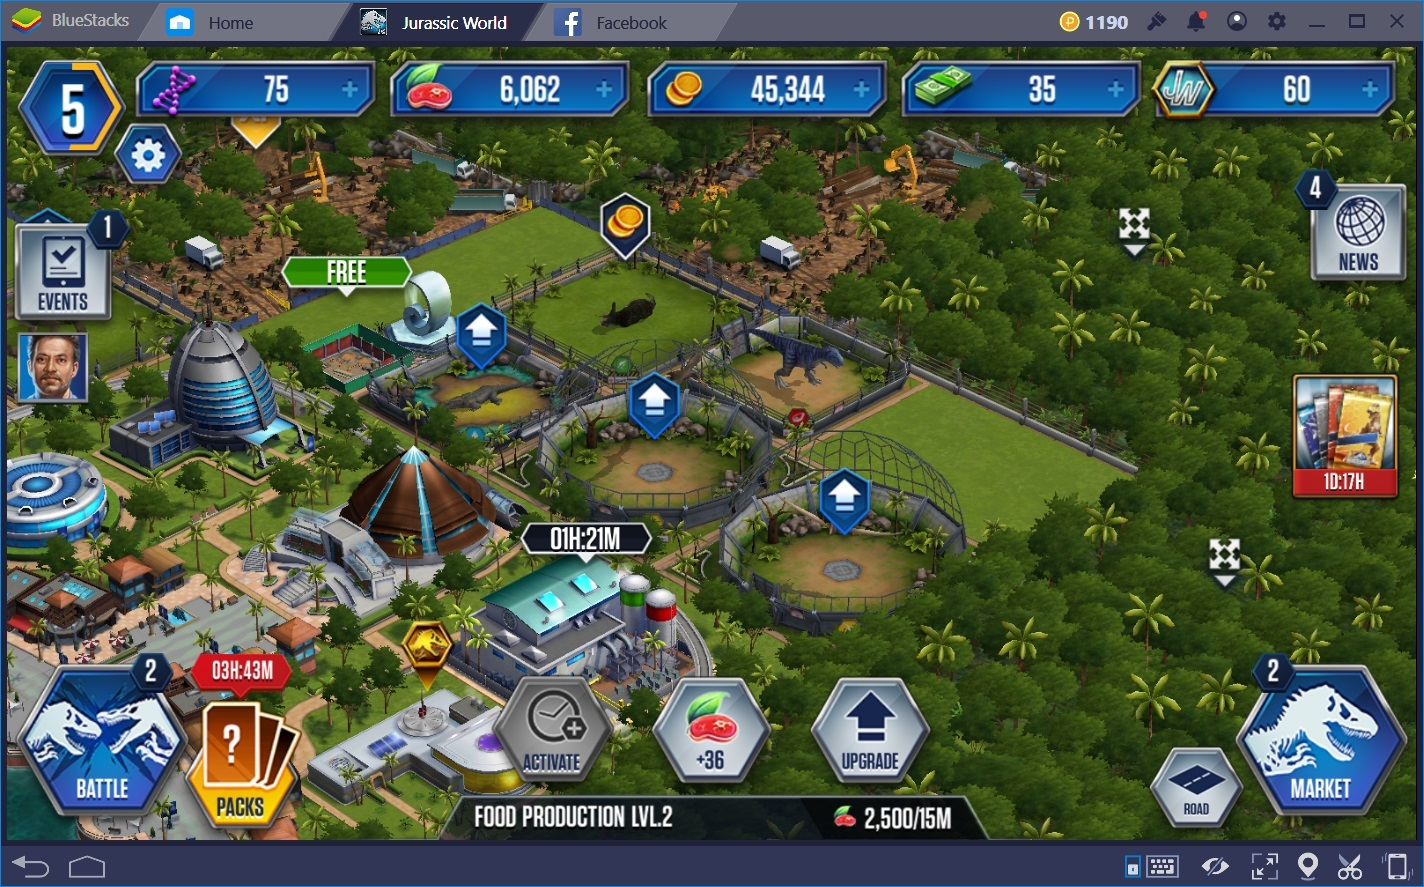 Guide To Managing Resources and Improving Park Economy in Jurassic World: The Game